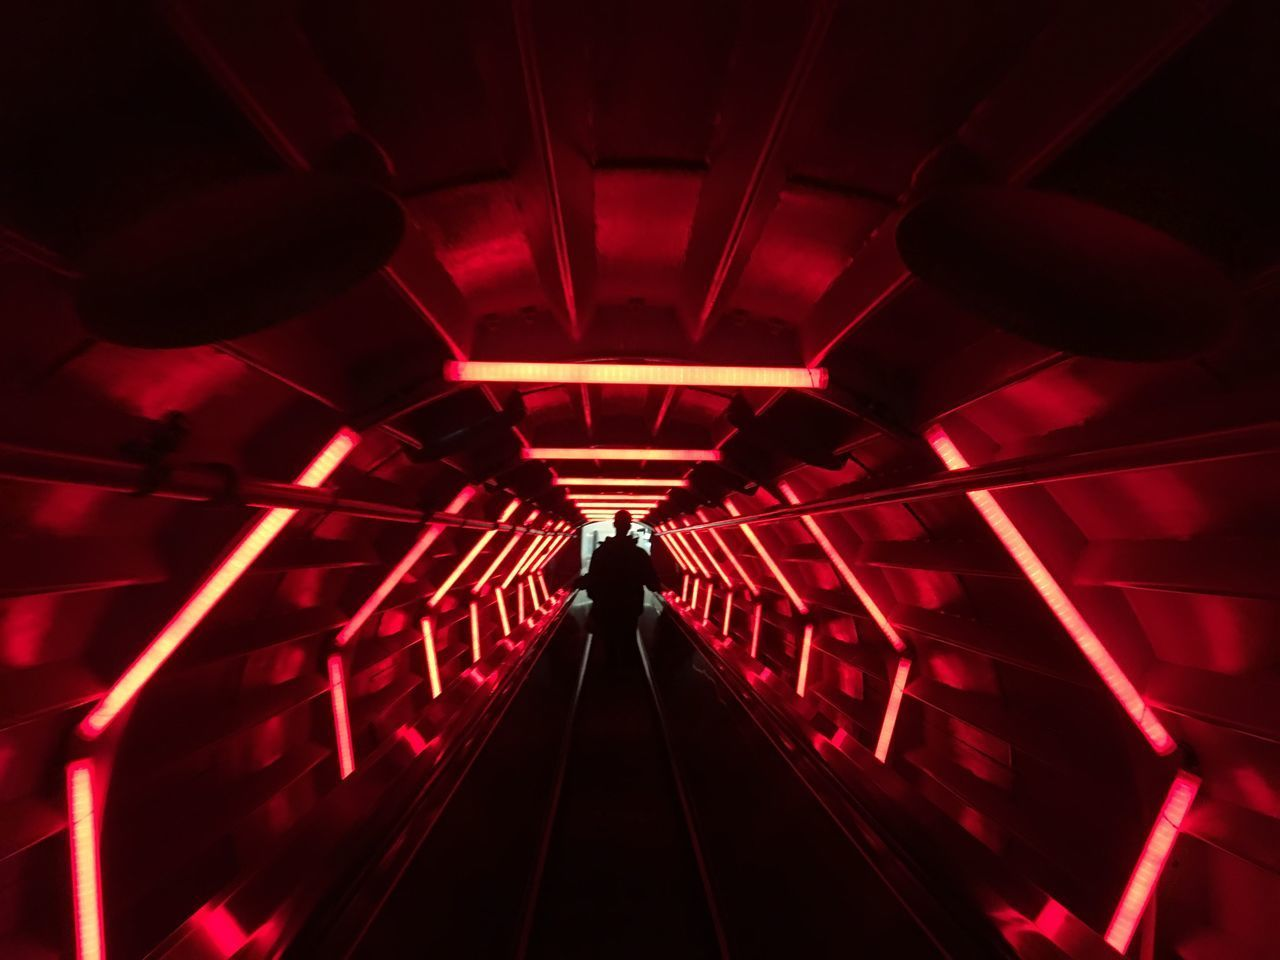 REAR VIEW OF PEOPLE WALKING IN ILLUMINATED SUBWAY TUNNEL